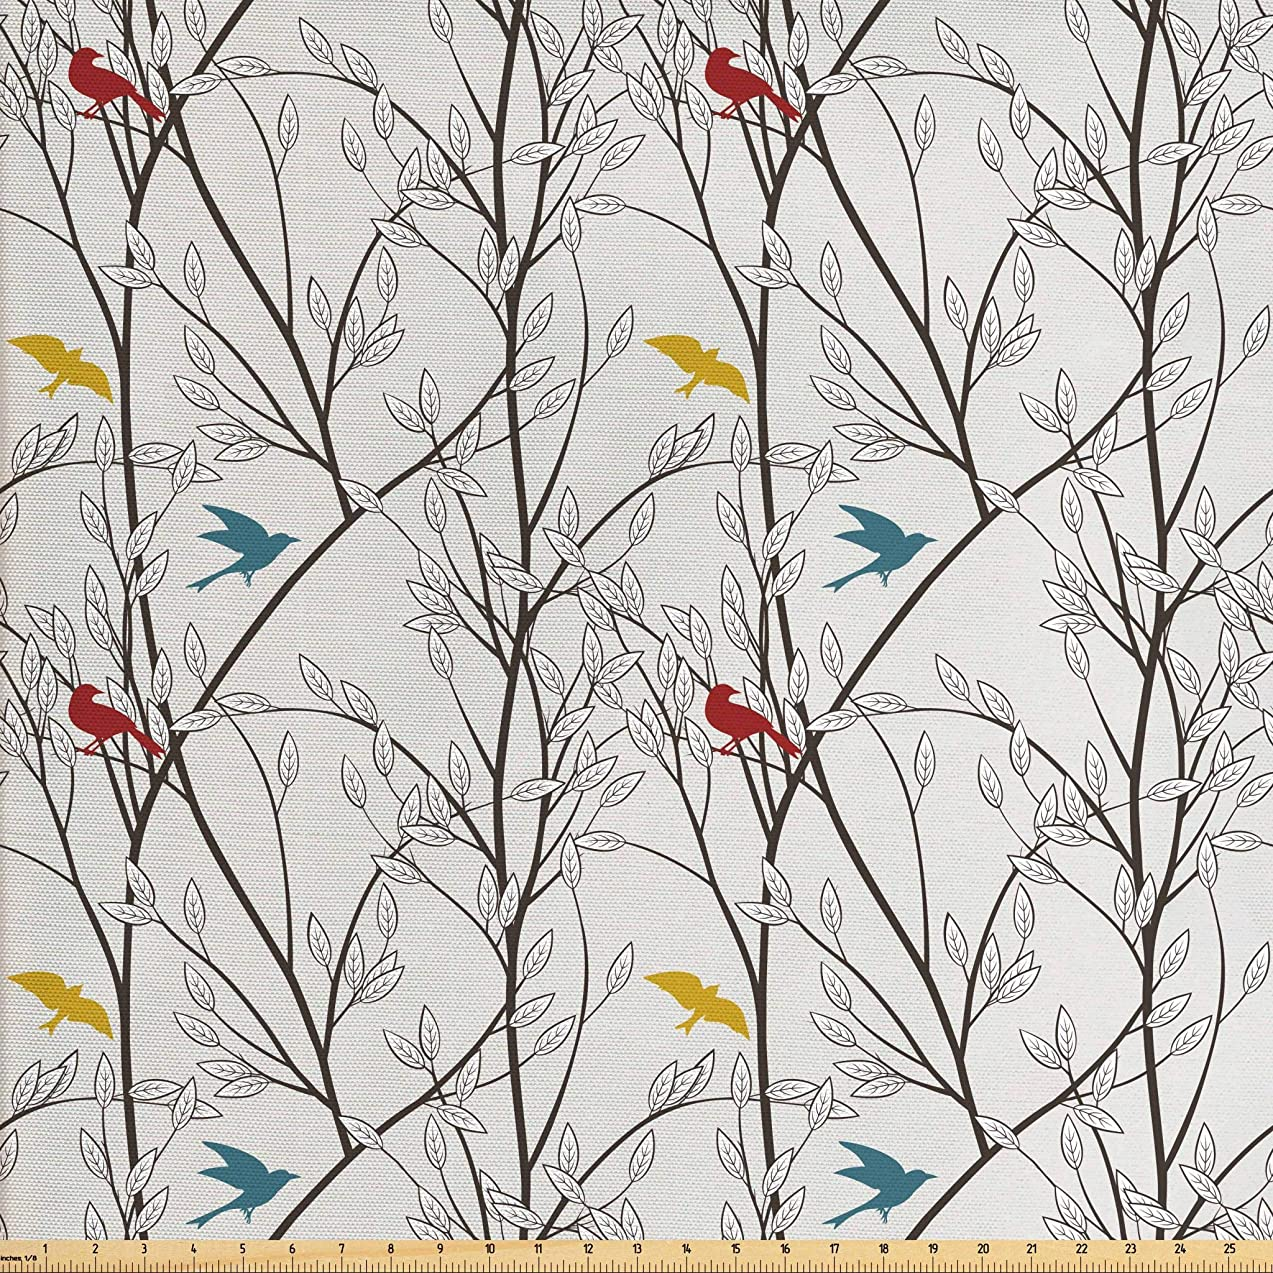 Ambesonne Nature Fabric by The Yard, Birds Wildlife Cartoon Like Image with Tree Leaf Art Print, Decorative Fabric for Upholstery and Home Accents, 2 Yards, Grey Maroon Blue and Mustard